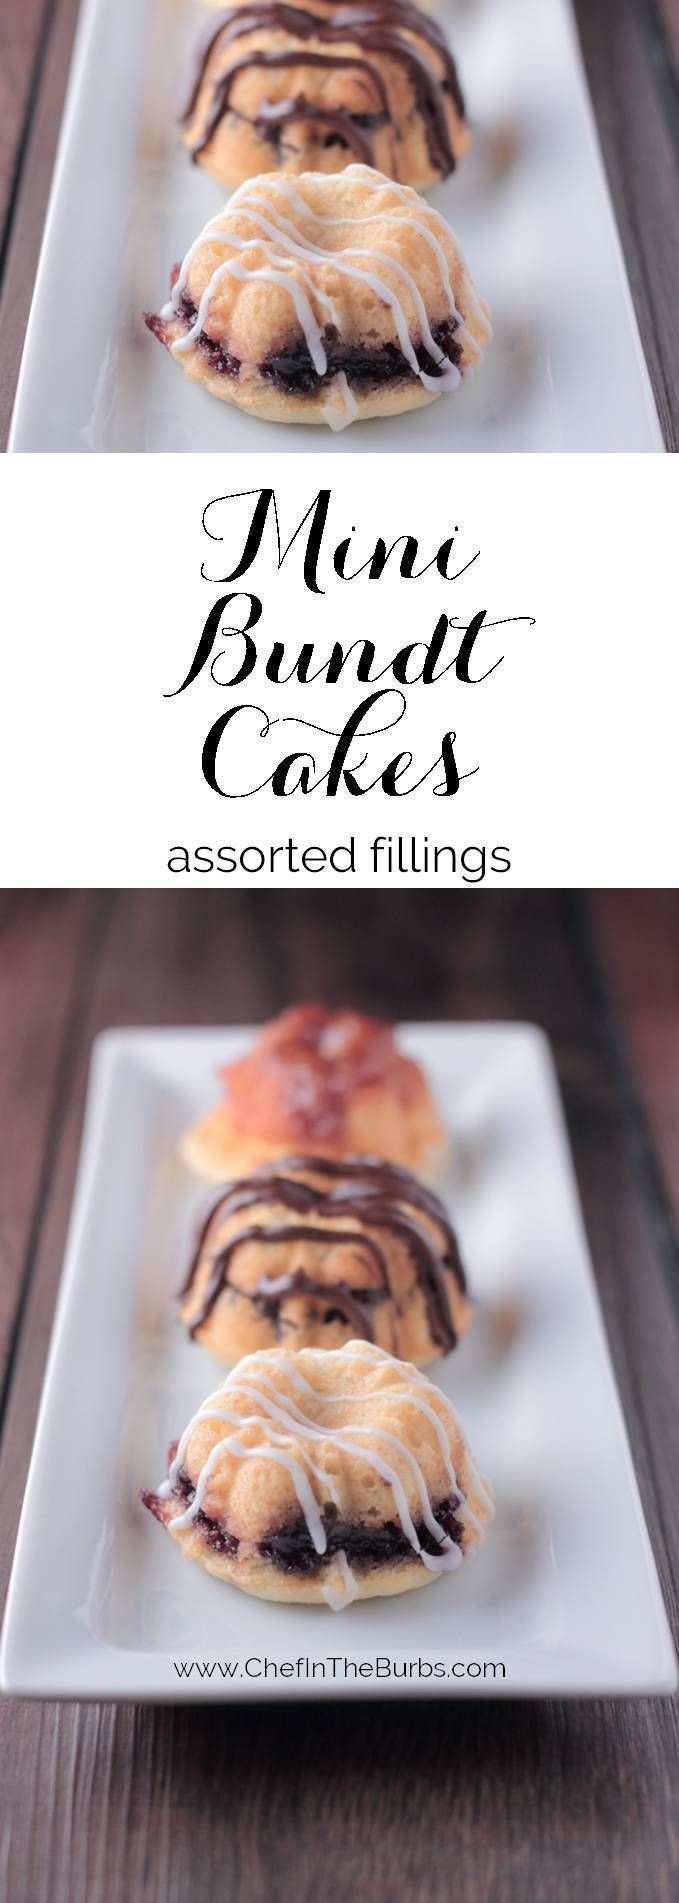 Mini Sour Cream Bundt Cakes filled with everything from chocolate chips to jam to cookie butter and sized perfectly to enjoy one of each flavor. Or two I don't judge.